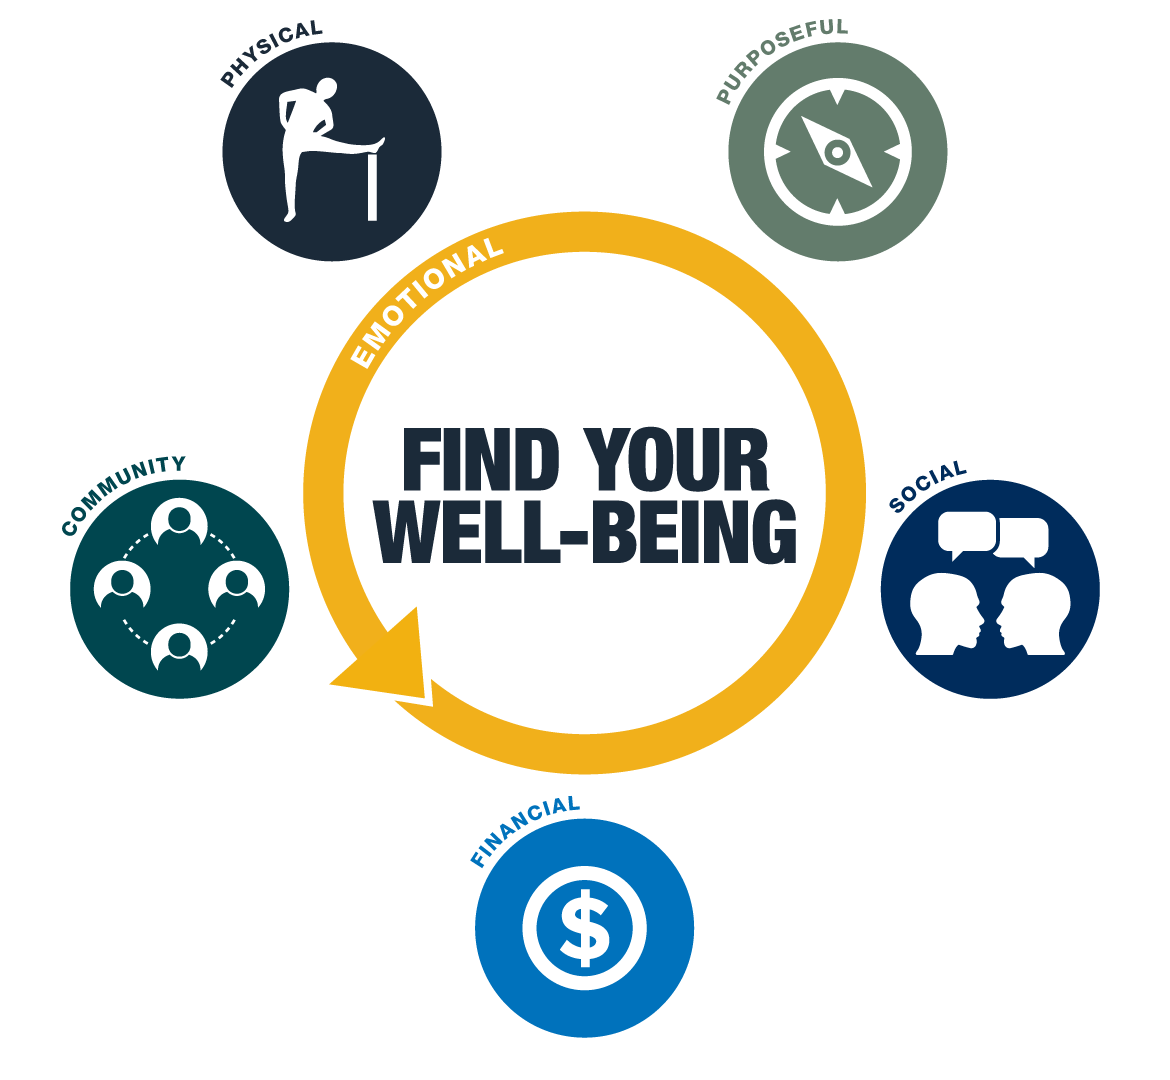 Find your well being is surrounded by five icons and their labels - Physical, Purposeful, Community, Financial, and Social.